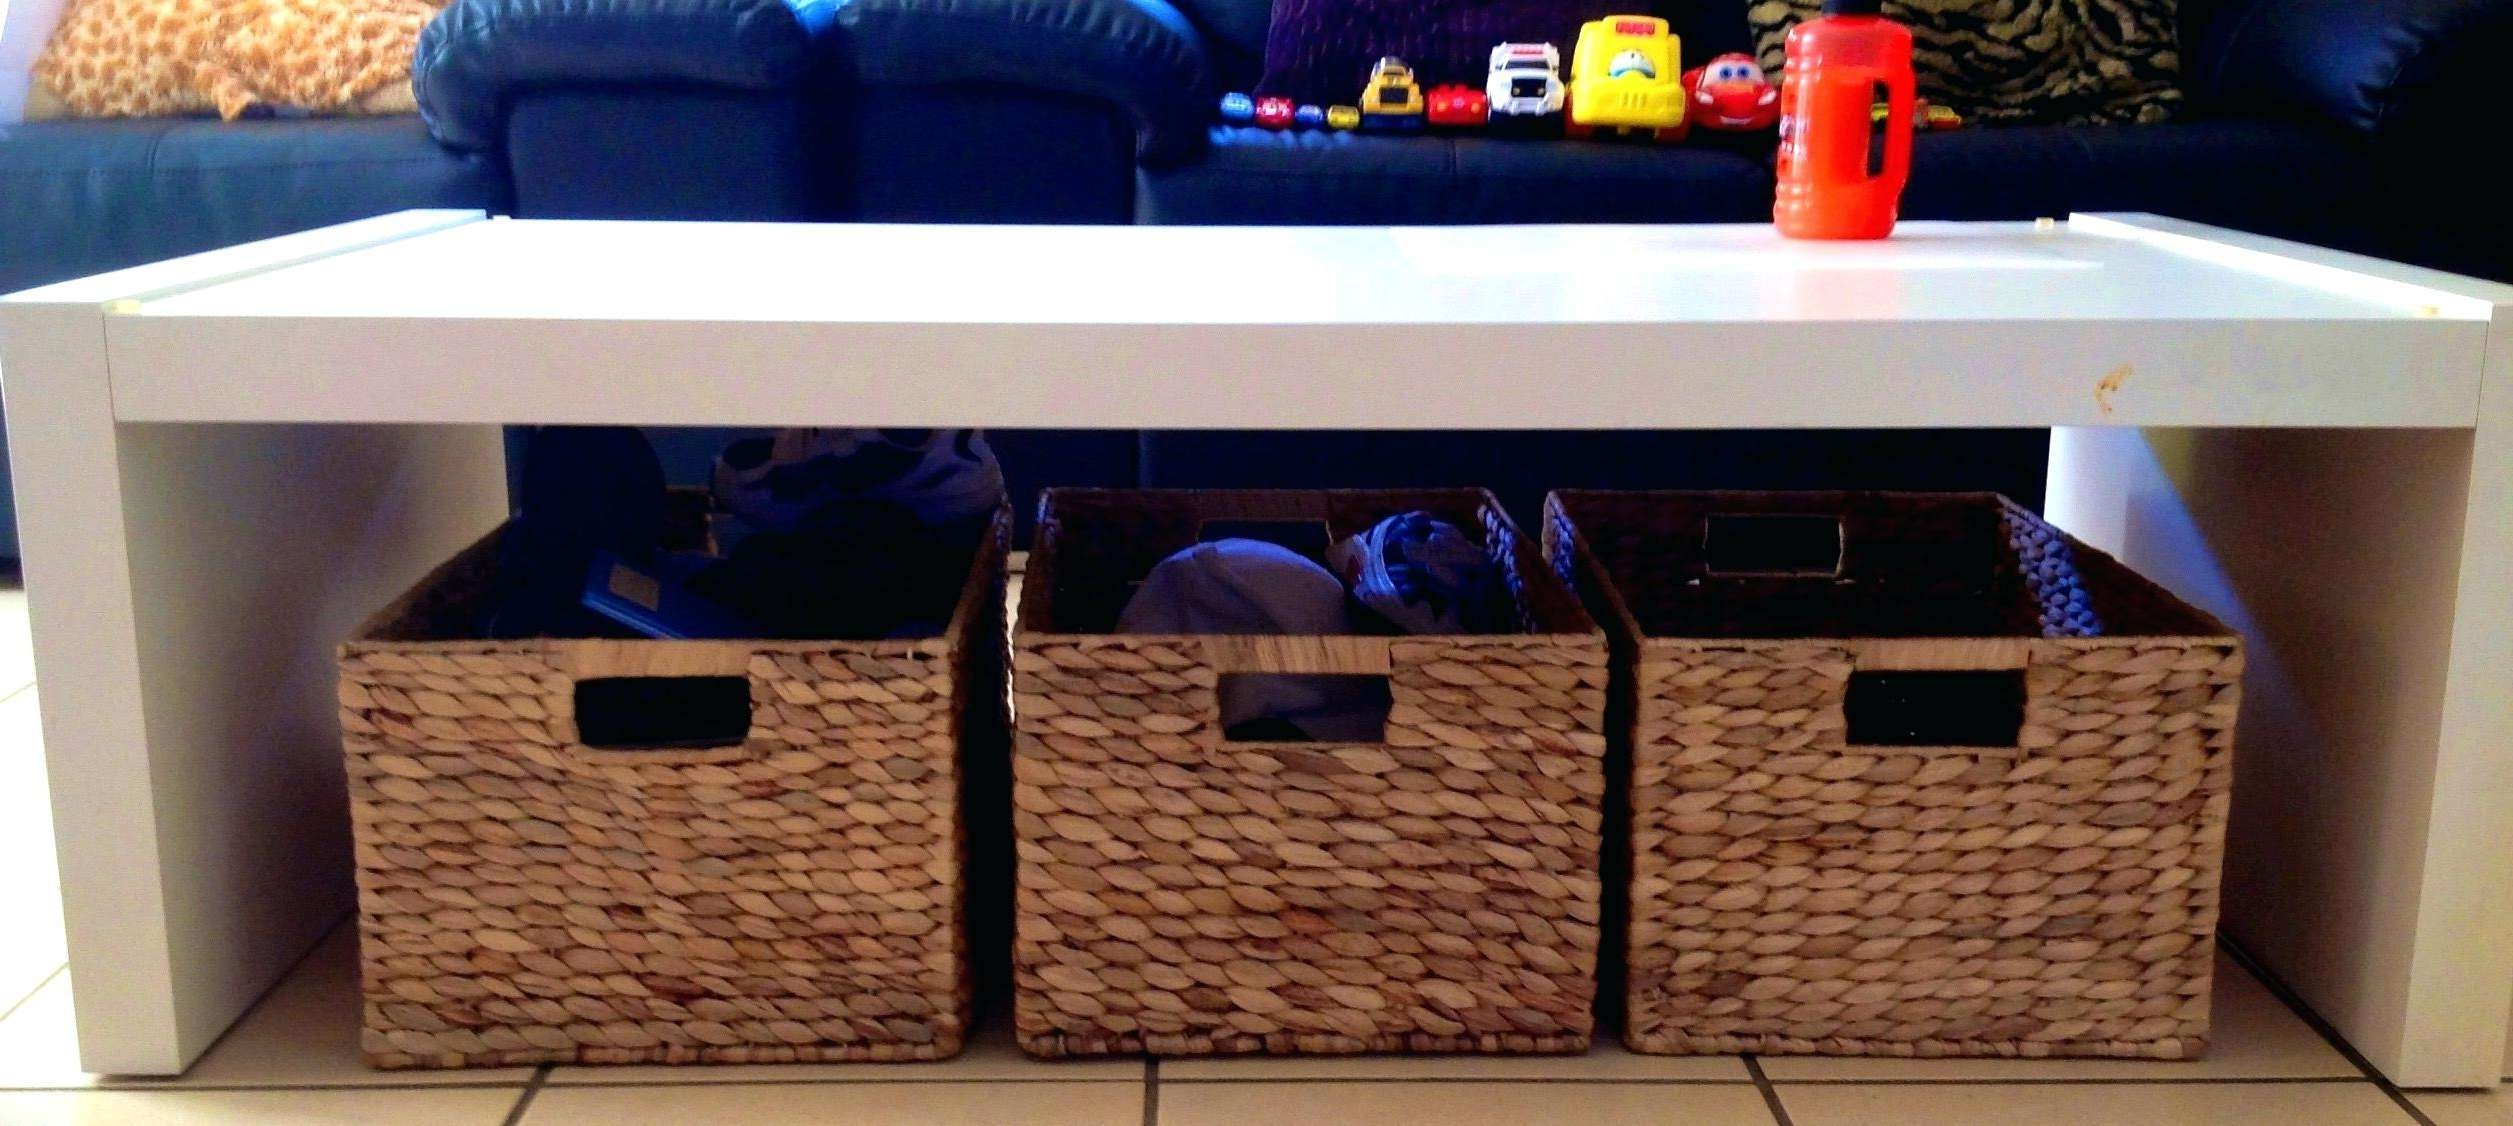 Favorite Coffee Table With Wicker Basket Storage With Regard To Coffee Table: Coffee Table With Baskets (View 13 of 20)